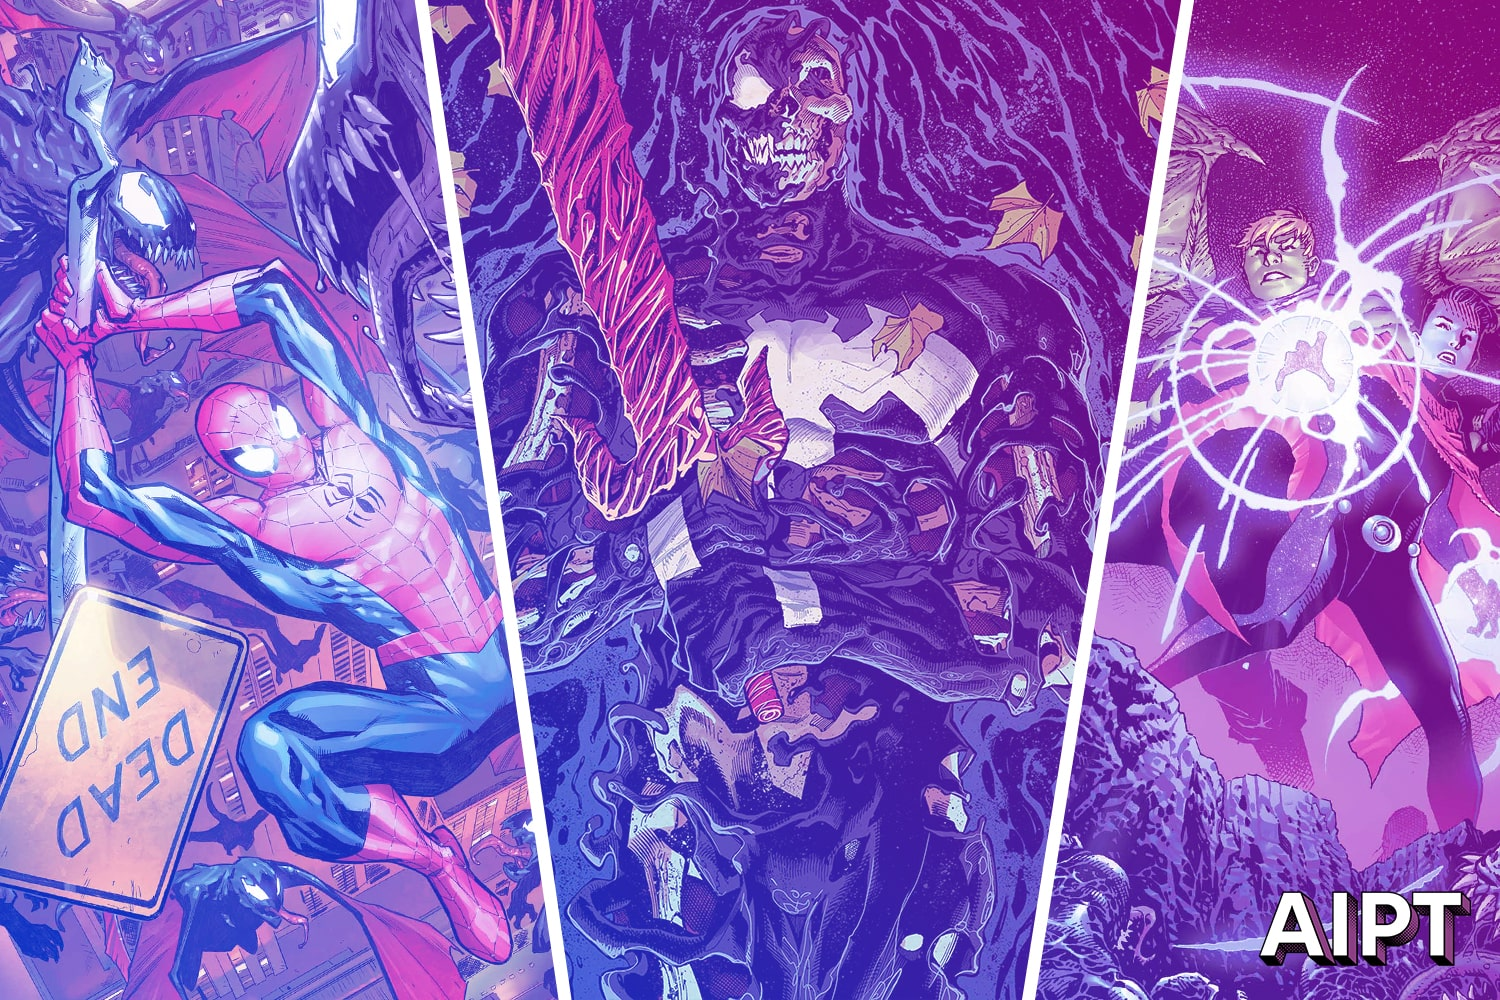 Marvel Comics reveals new 'King in Black' finale cover art and details